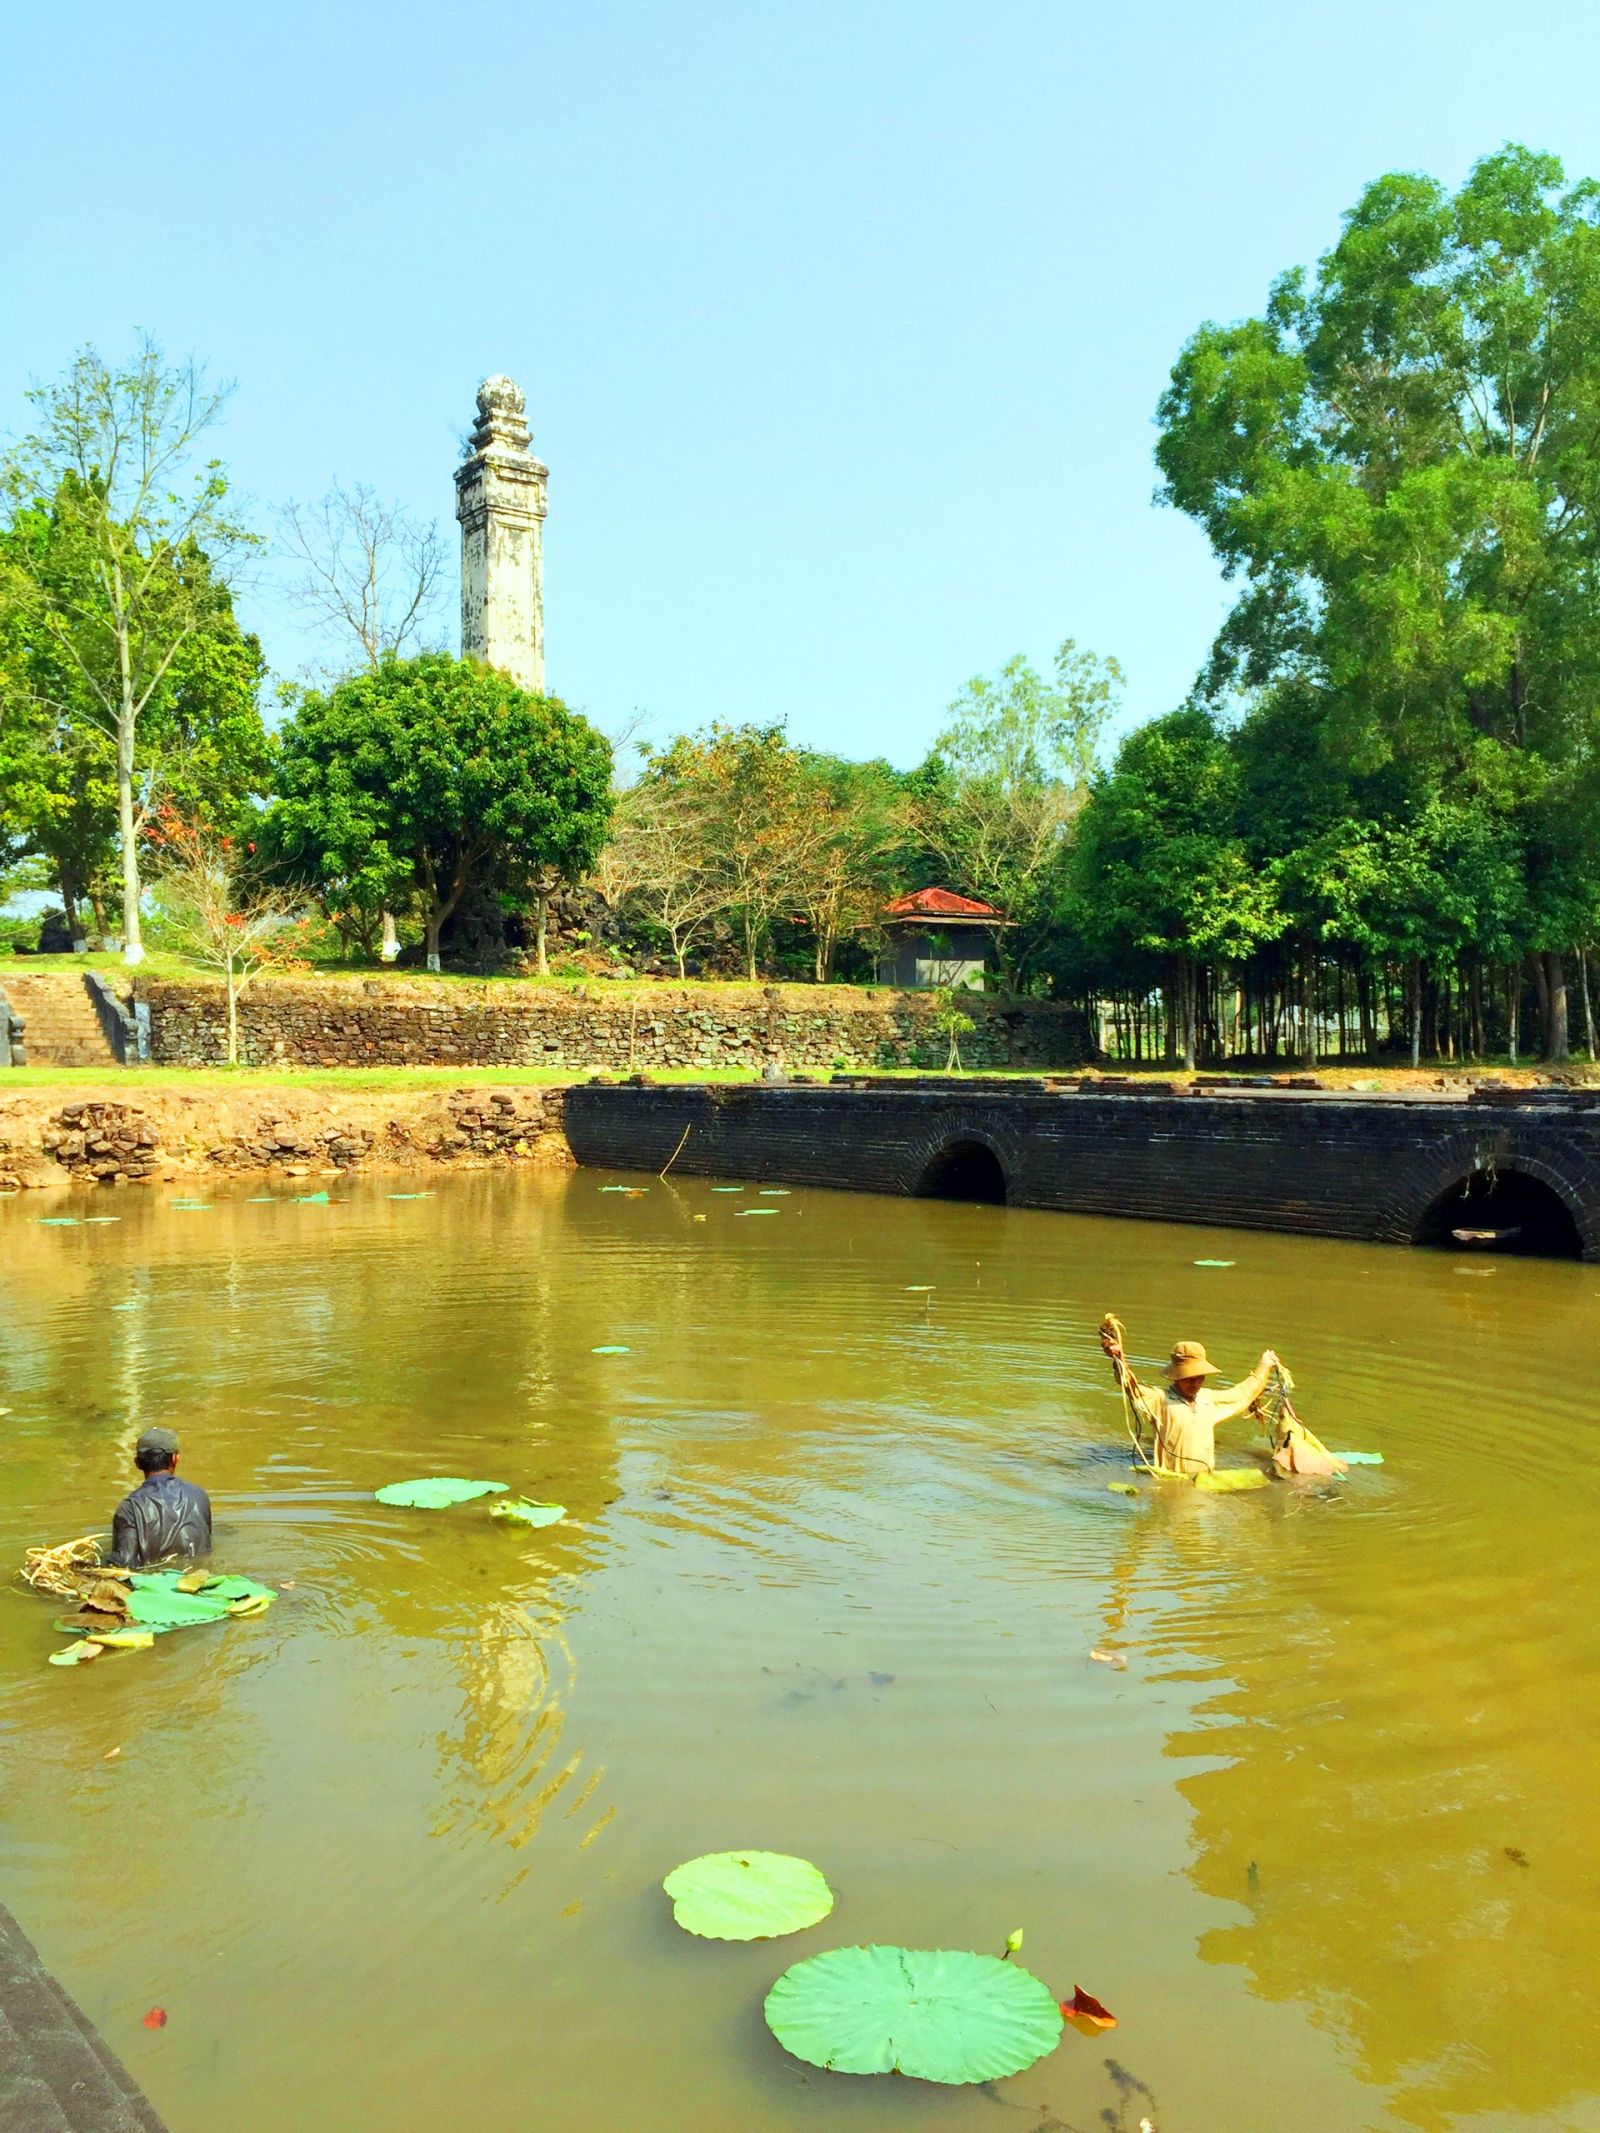 After An Hoa gate, the lake at Thieu Tri tomb was also planted with lotus. In its blooming season, the lotus will create more impression to the landscape here